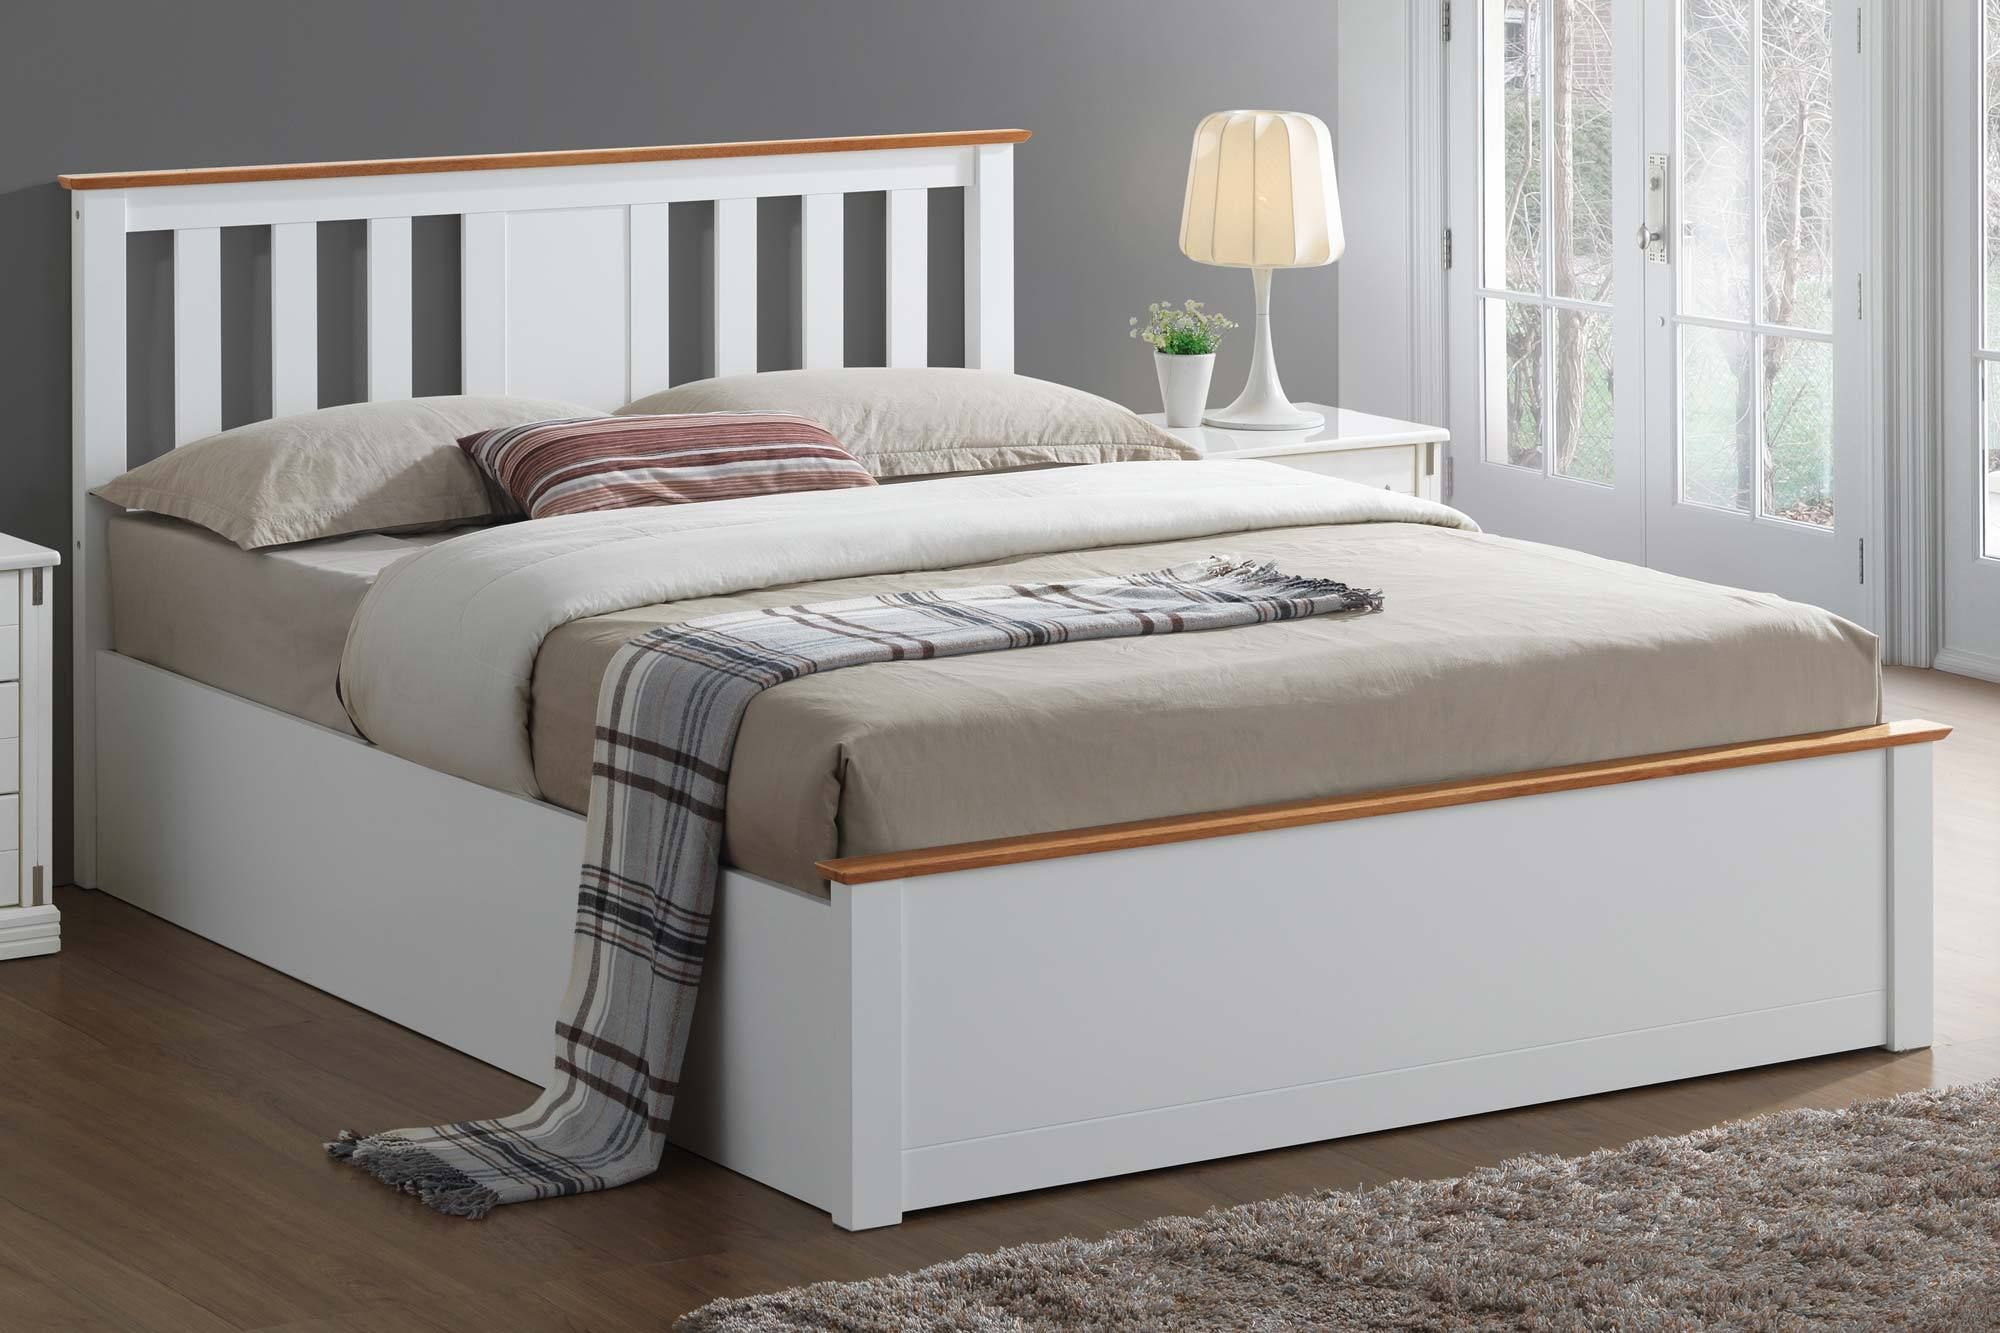 4ft6 Bed Frame Chester White Oak Ottoman Storage Bed Frame 4ft6 Double In